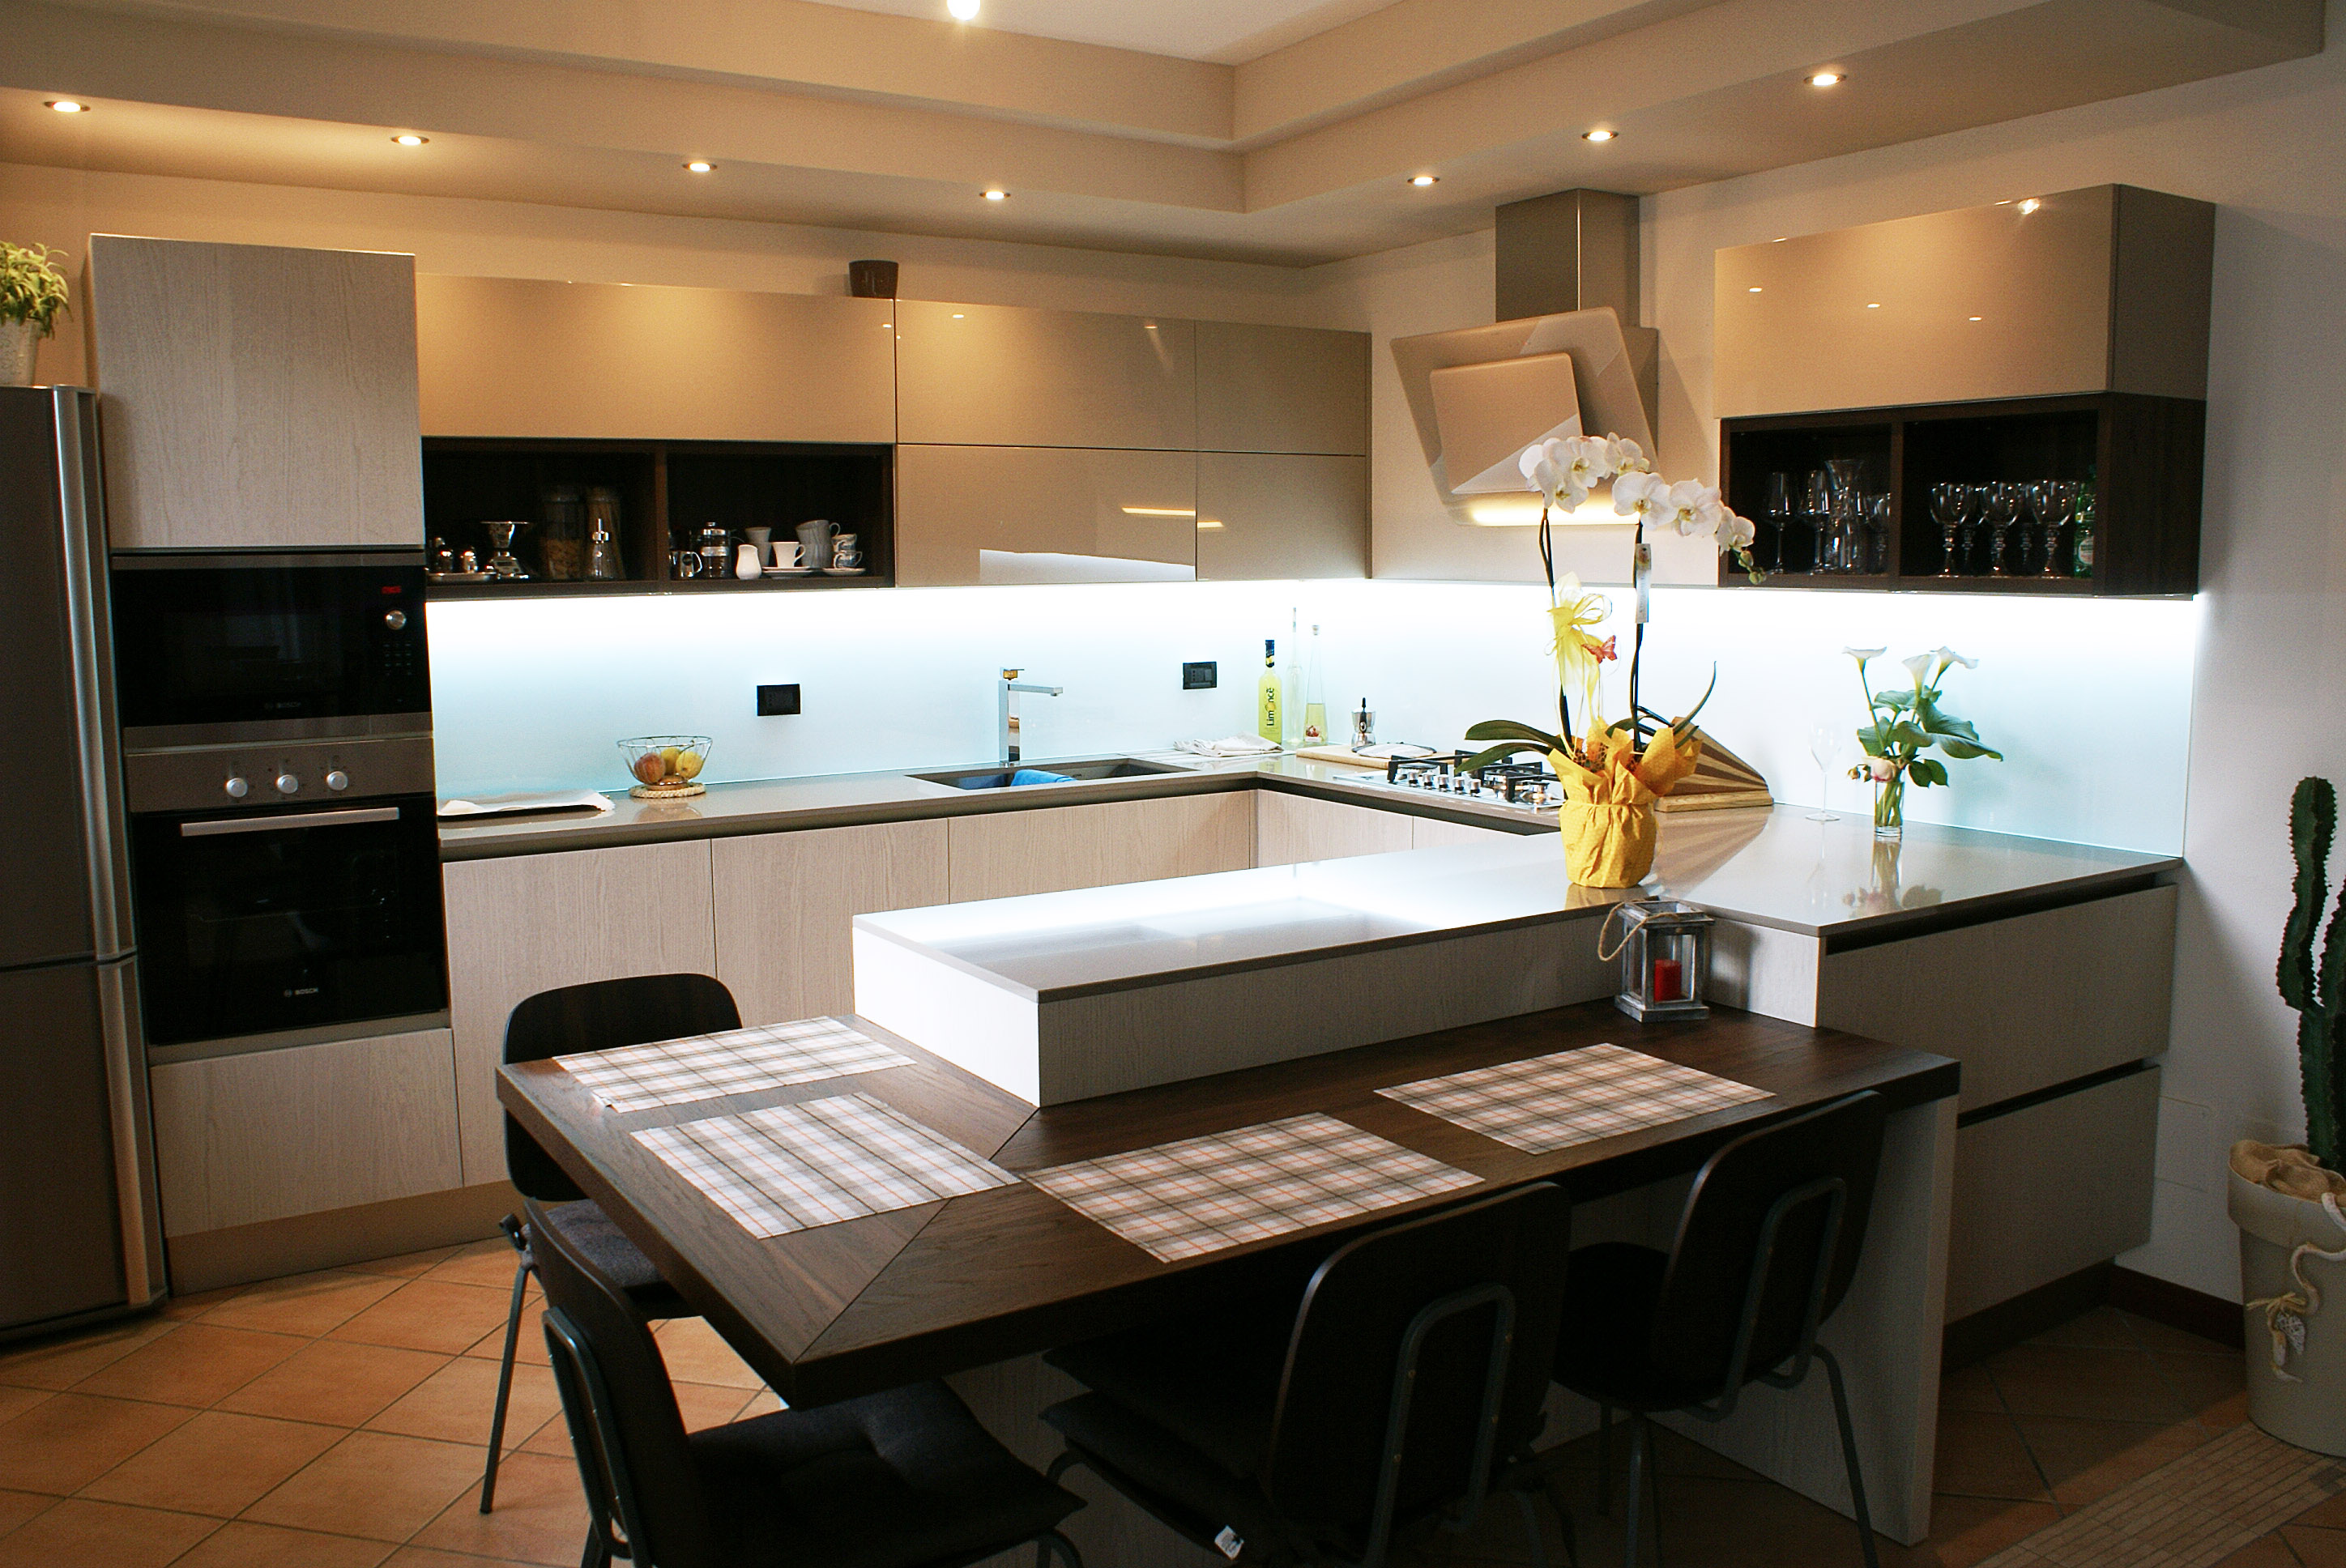 Stunning oyster veneta cucine images - Cucine astra opinioni ...